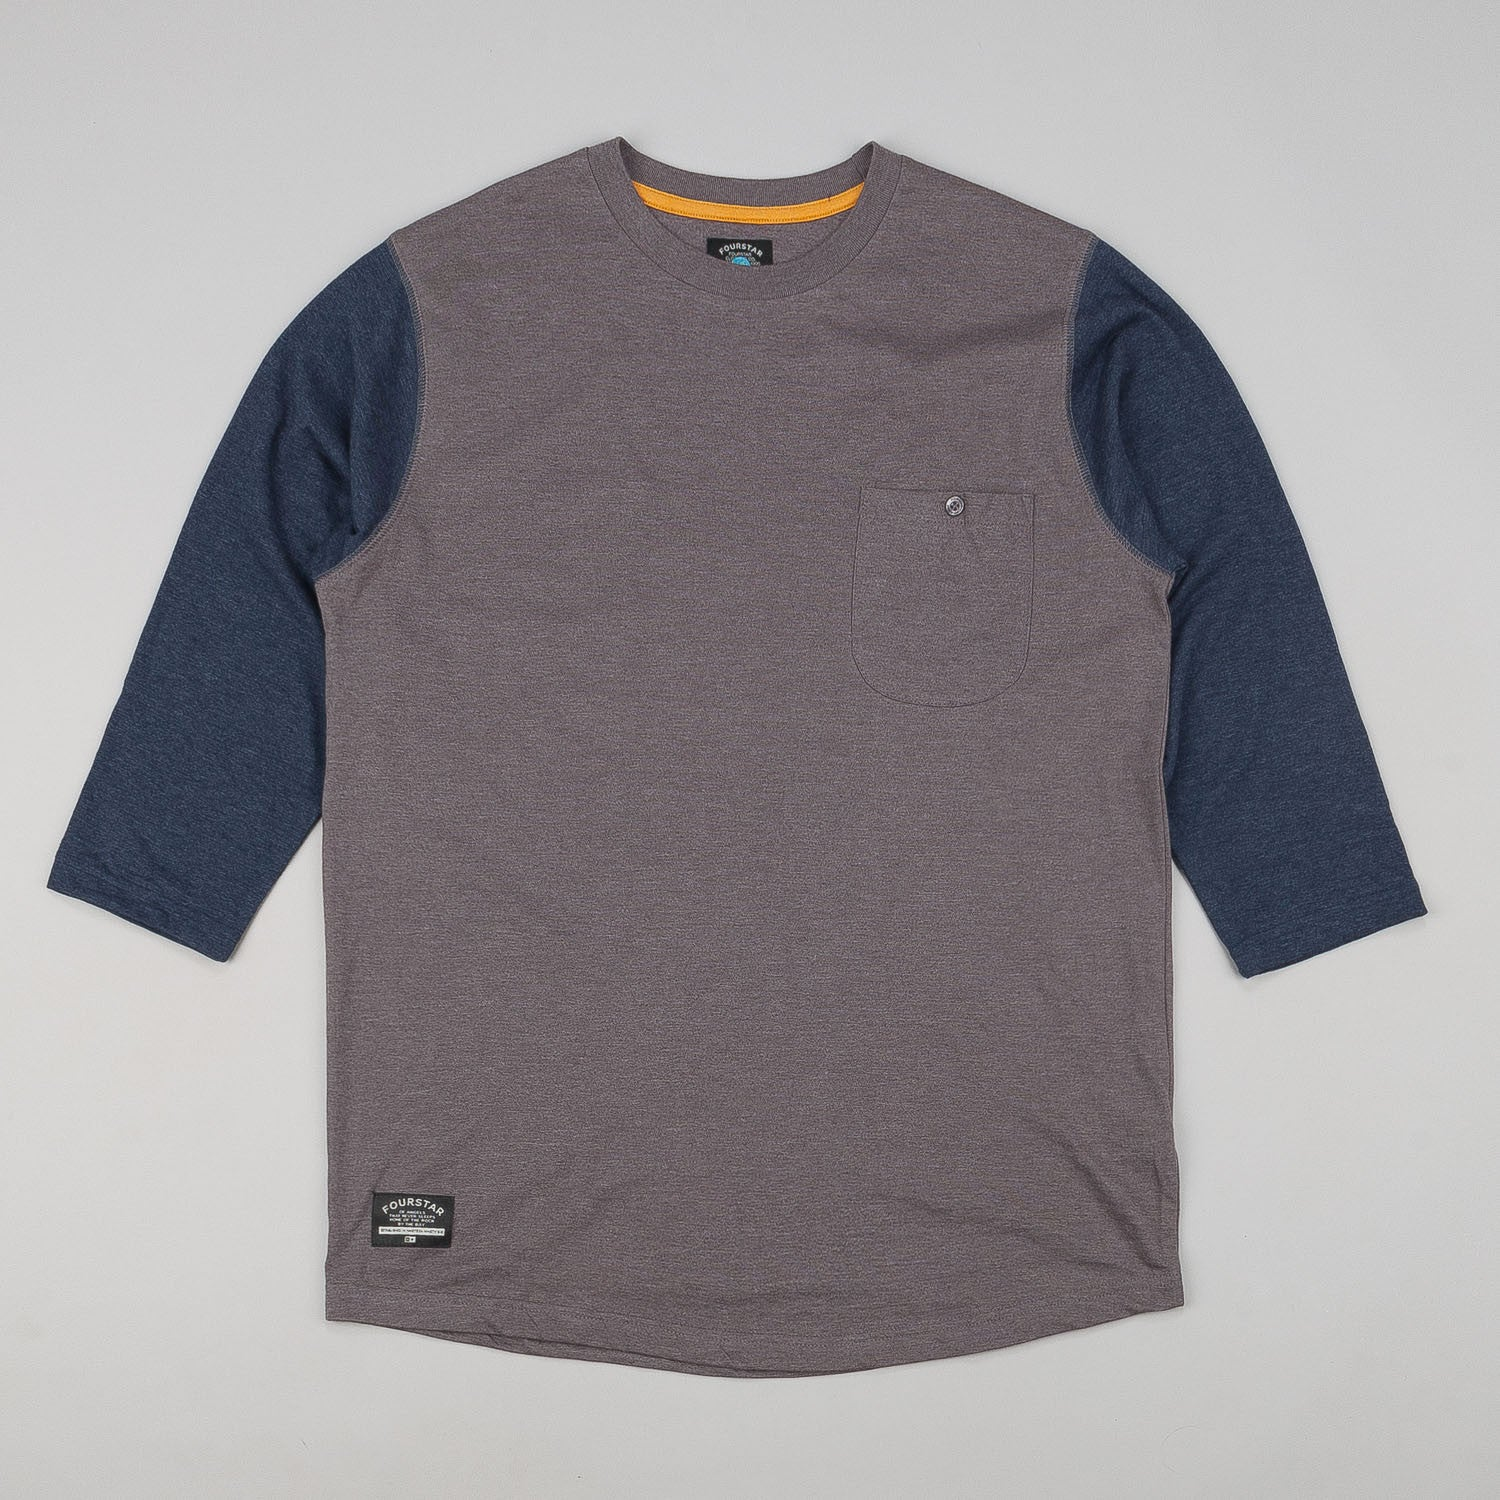 Fourstar Leavenworth 3/4 Sleeve Pocket T-Shirt